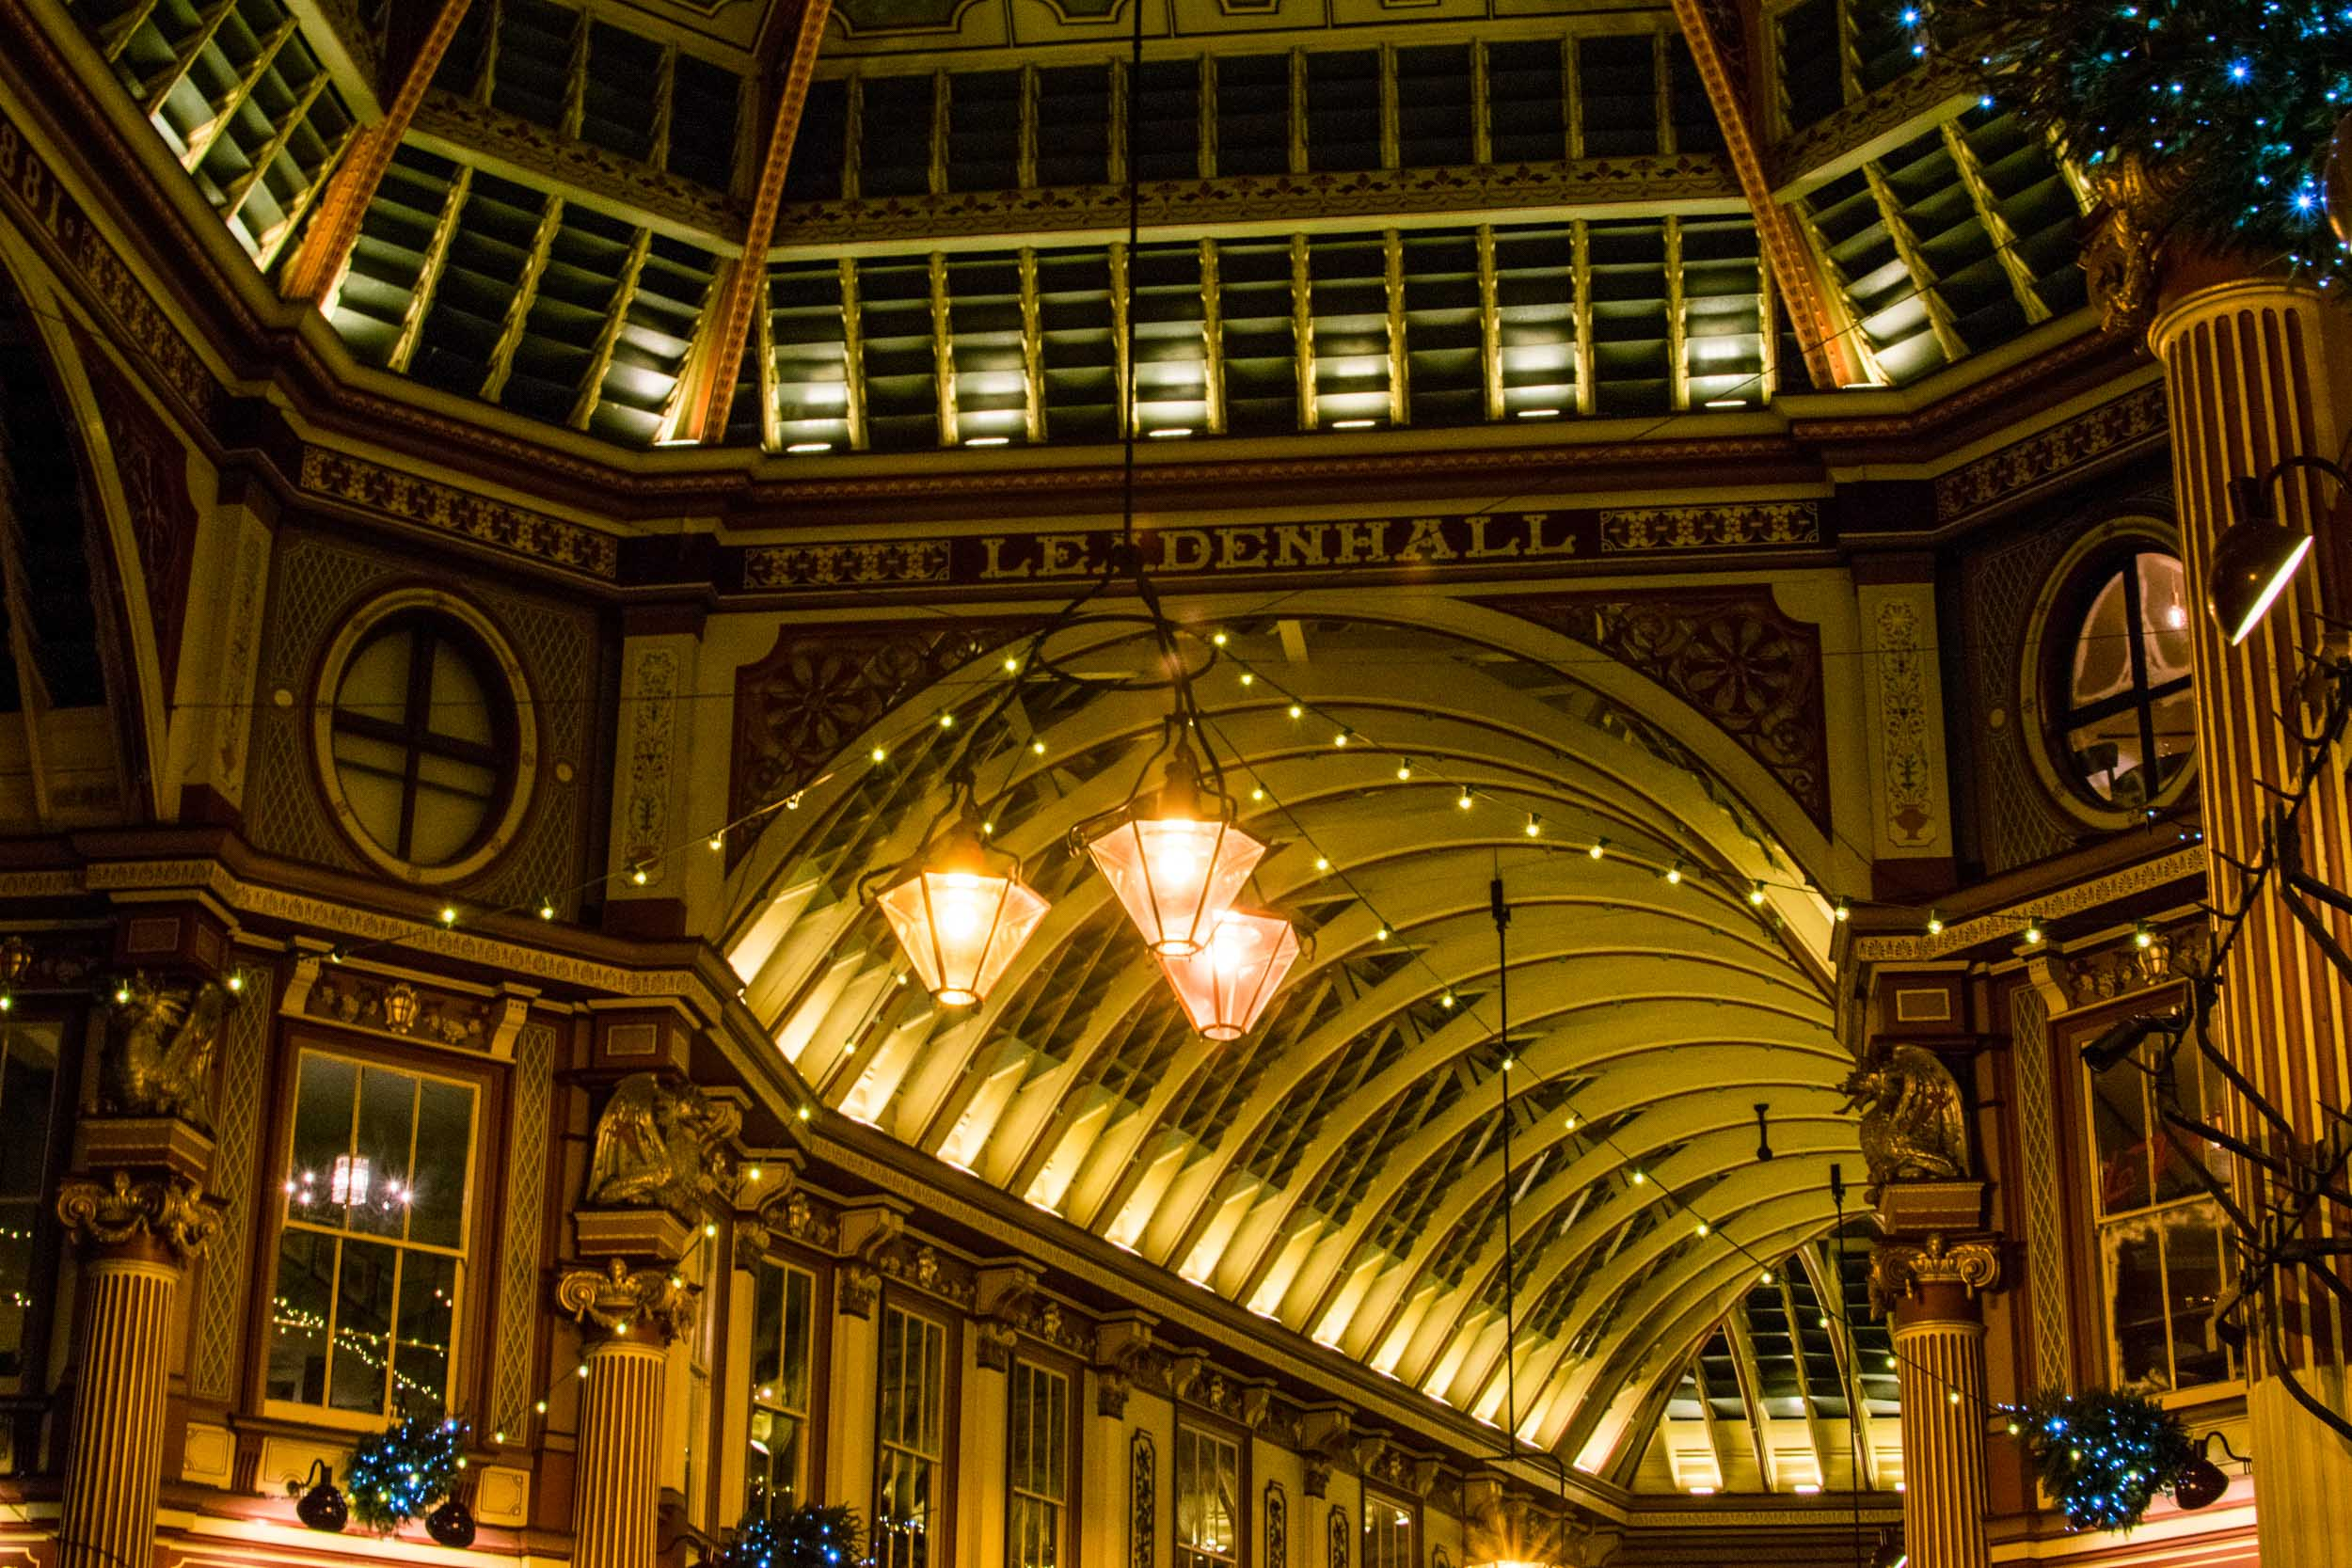 The arched roof of London's Leadenhall Market.